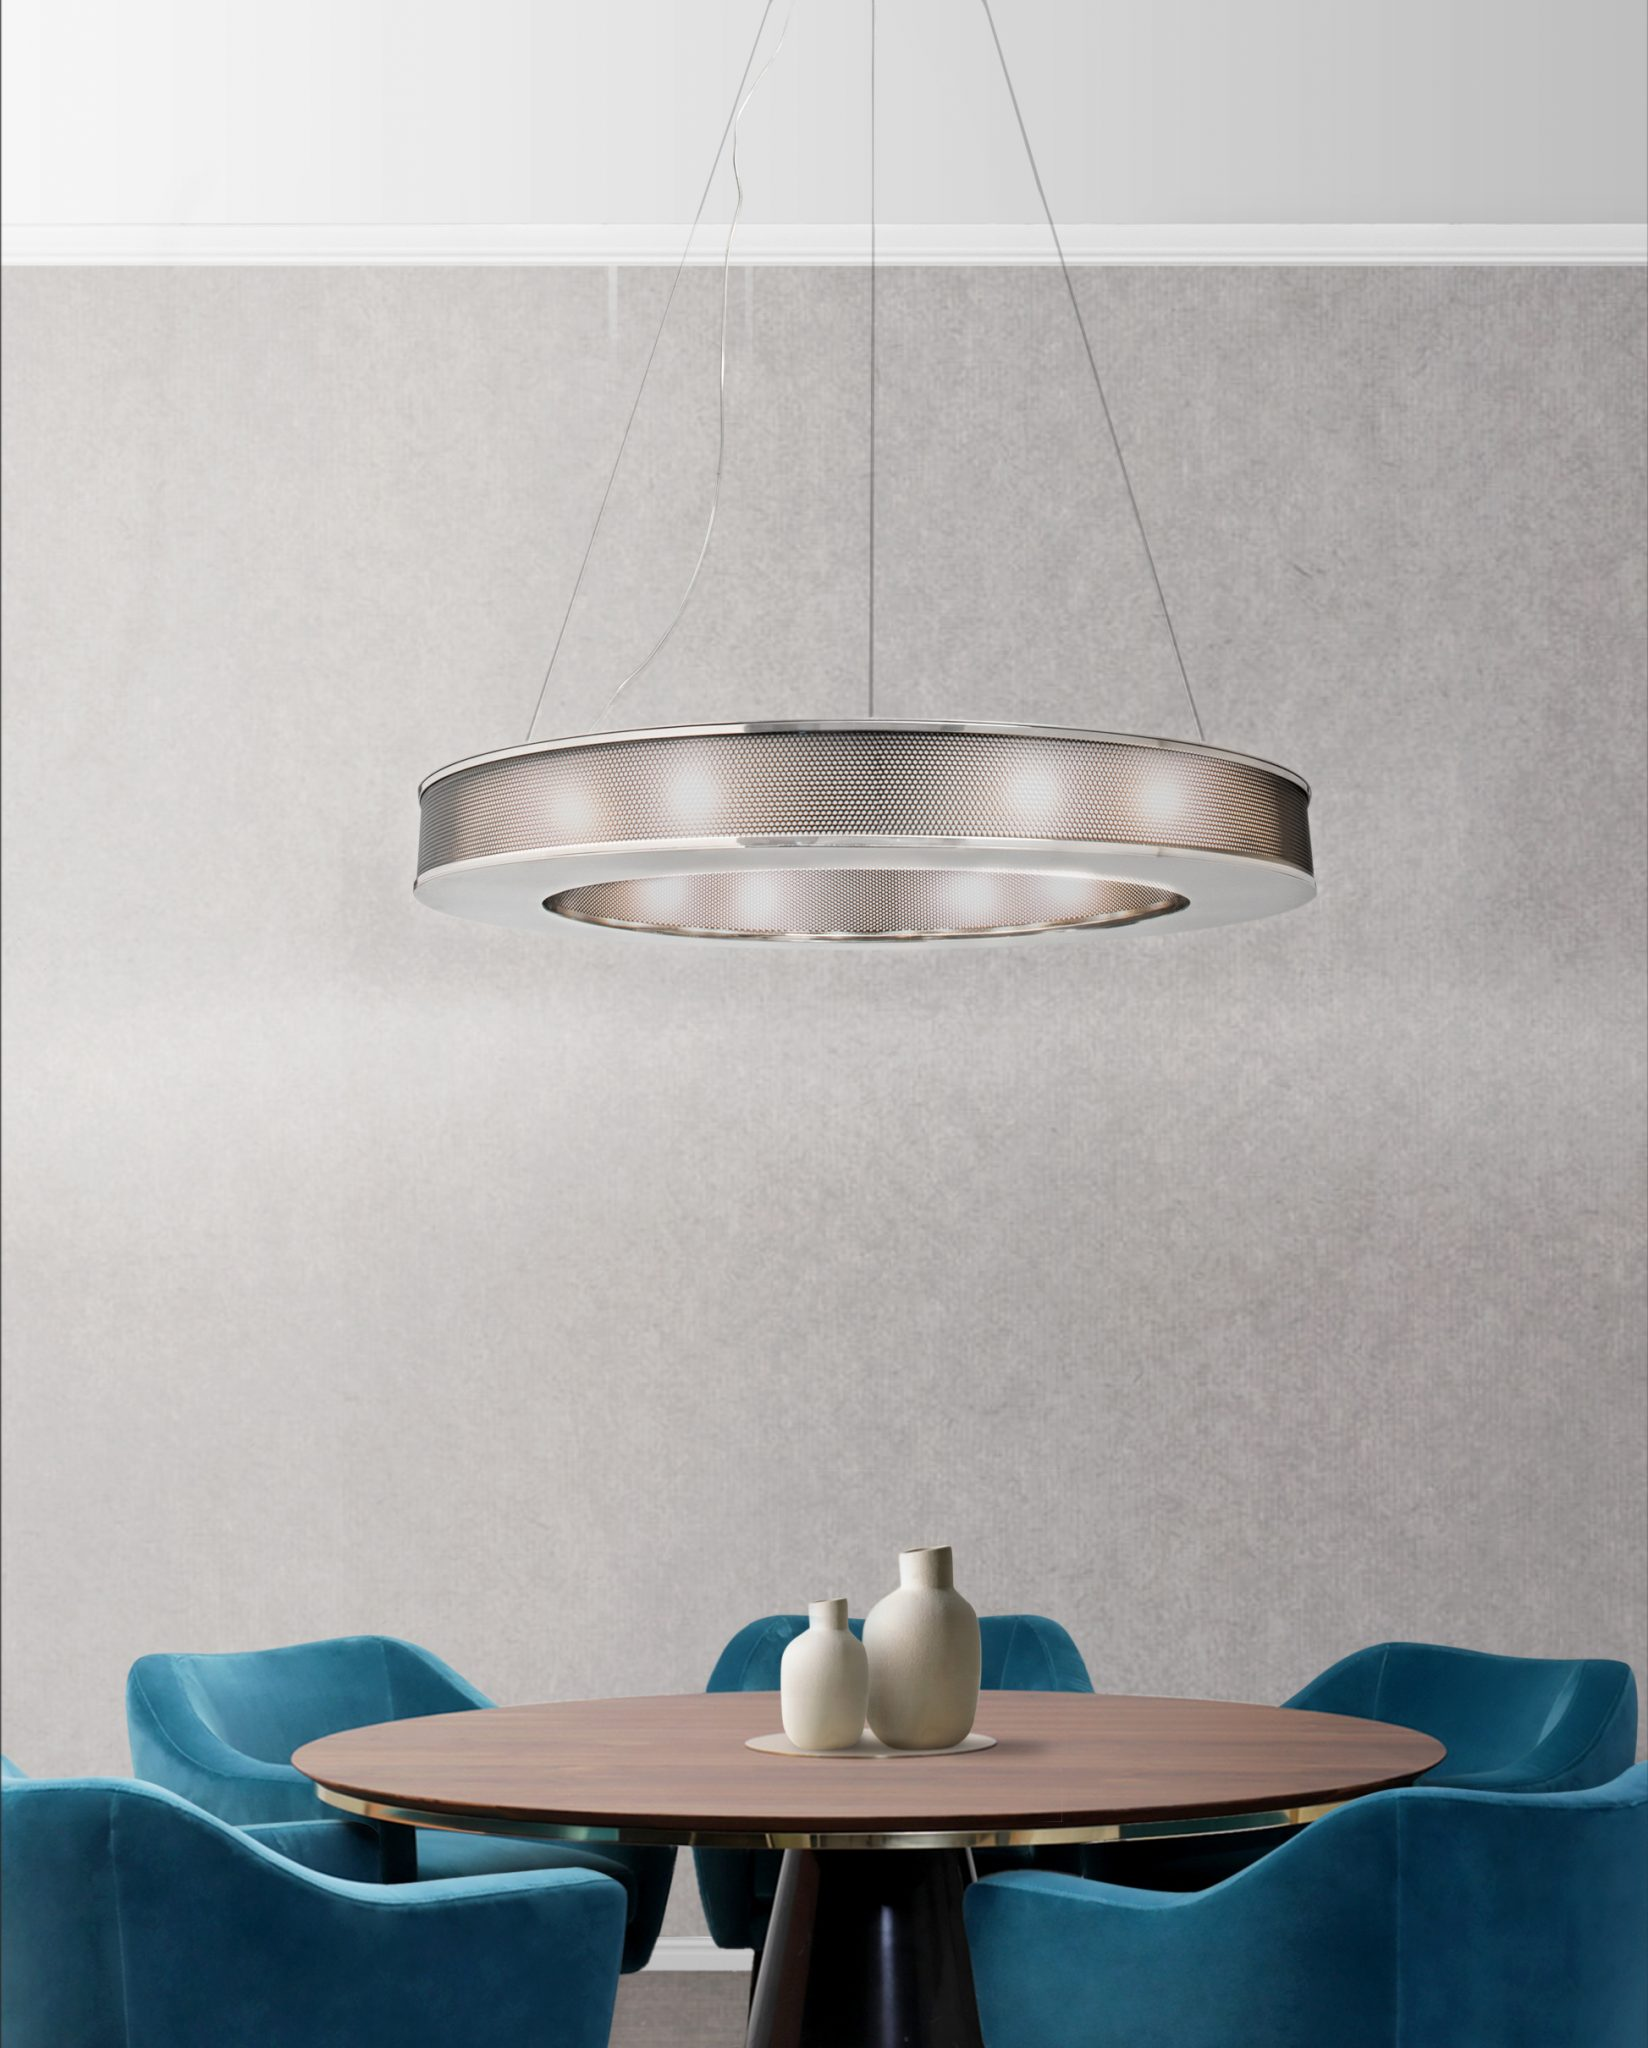 Mid-Century Modern Lighting Design for your Dining Room